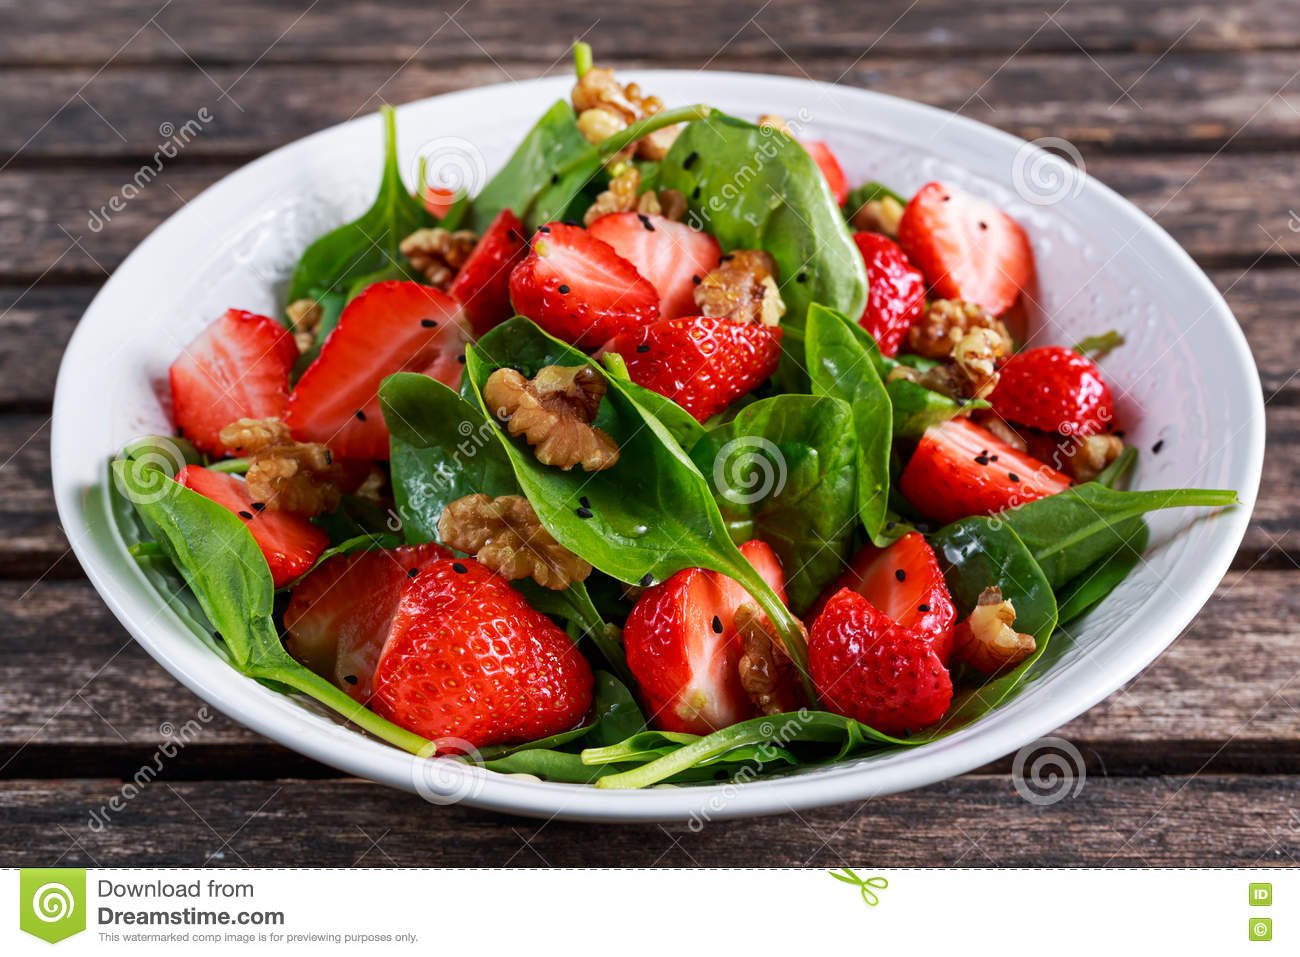 Summer Fruit Vegan Spinach Strawberry nuts Salad. concepts health food